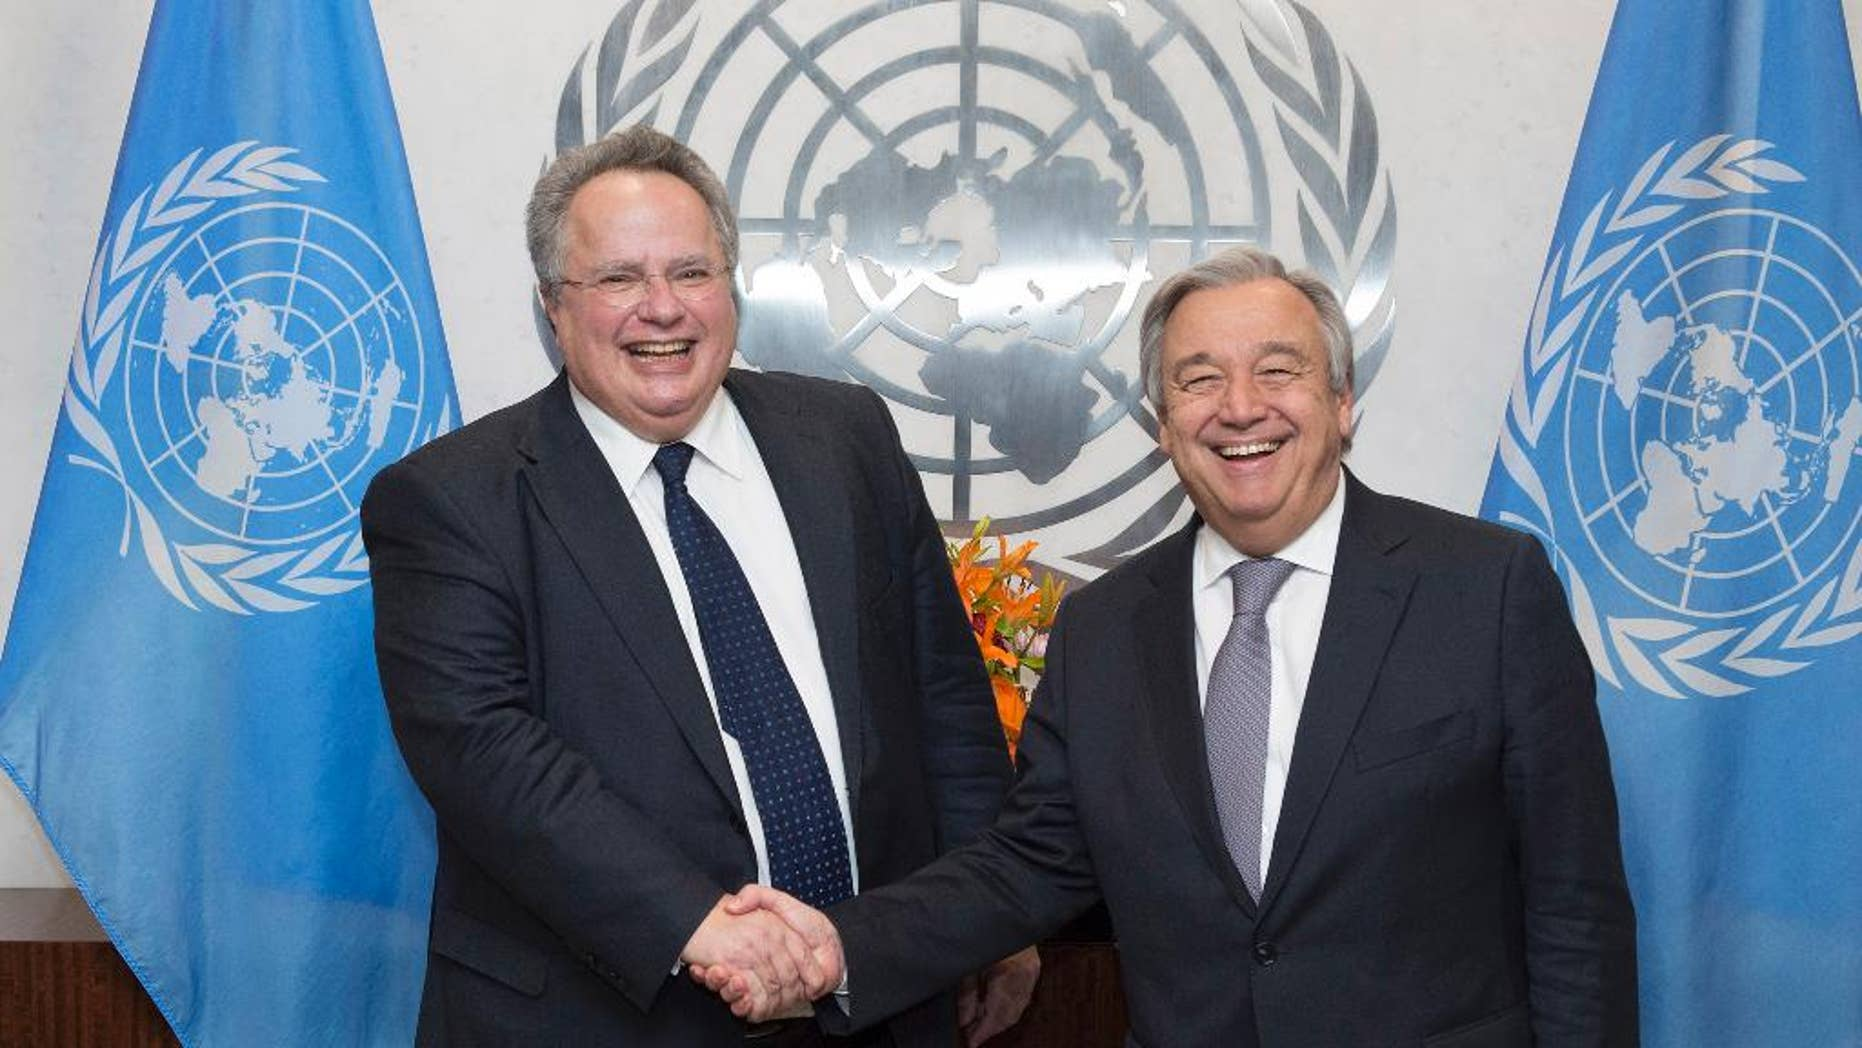 In this photo provided by the United Nations, U.N. Secretary-General Antonio Guterres, right, shakes hands with Greek Foreign Minister Nikos Kotzias at U.N. headquarters, Friday, Jan. 6, 2017. (Eskinder Debebe/The United Nations via AP)